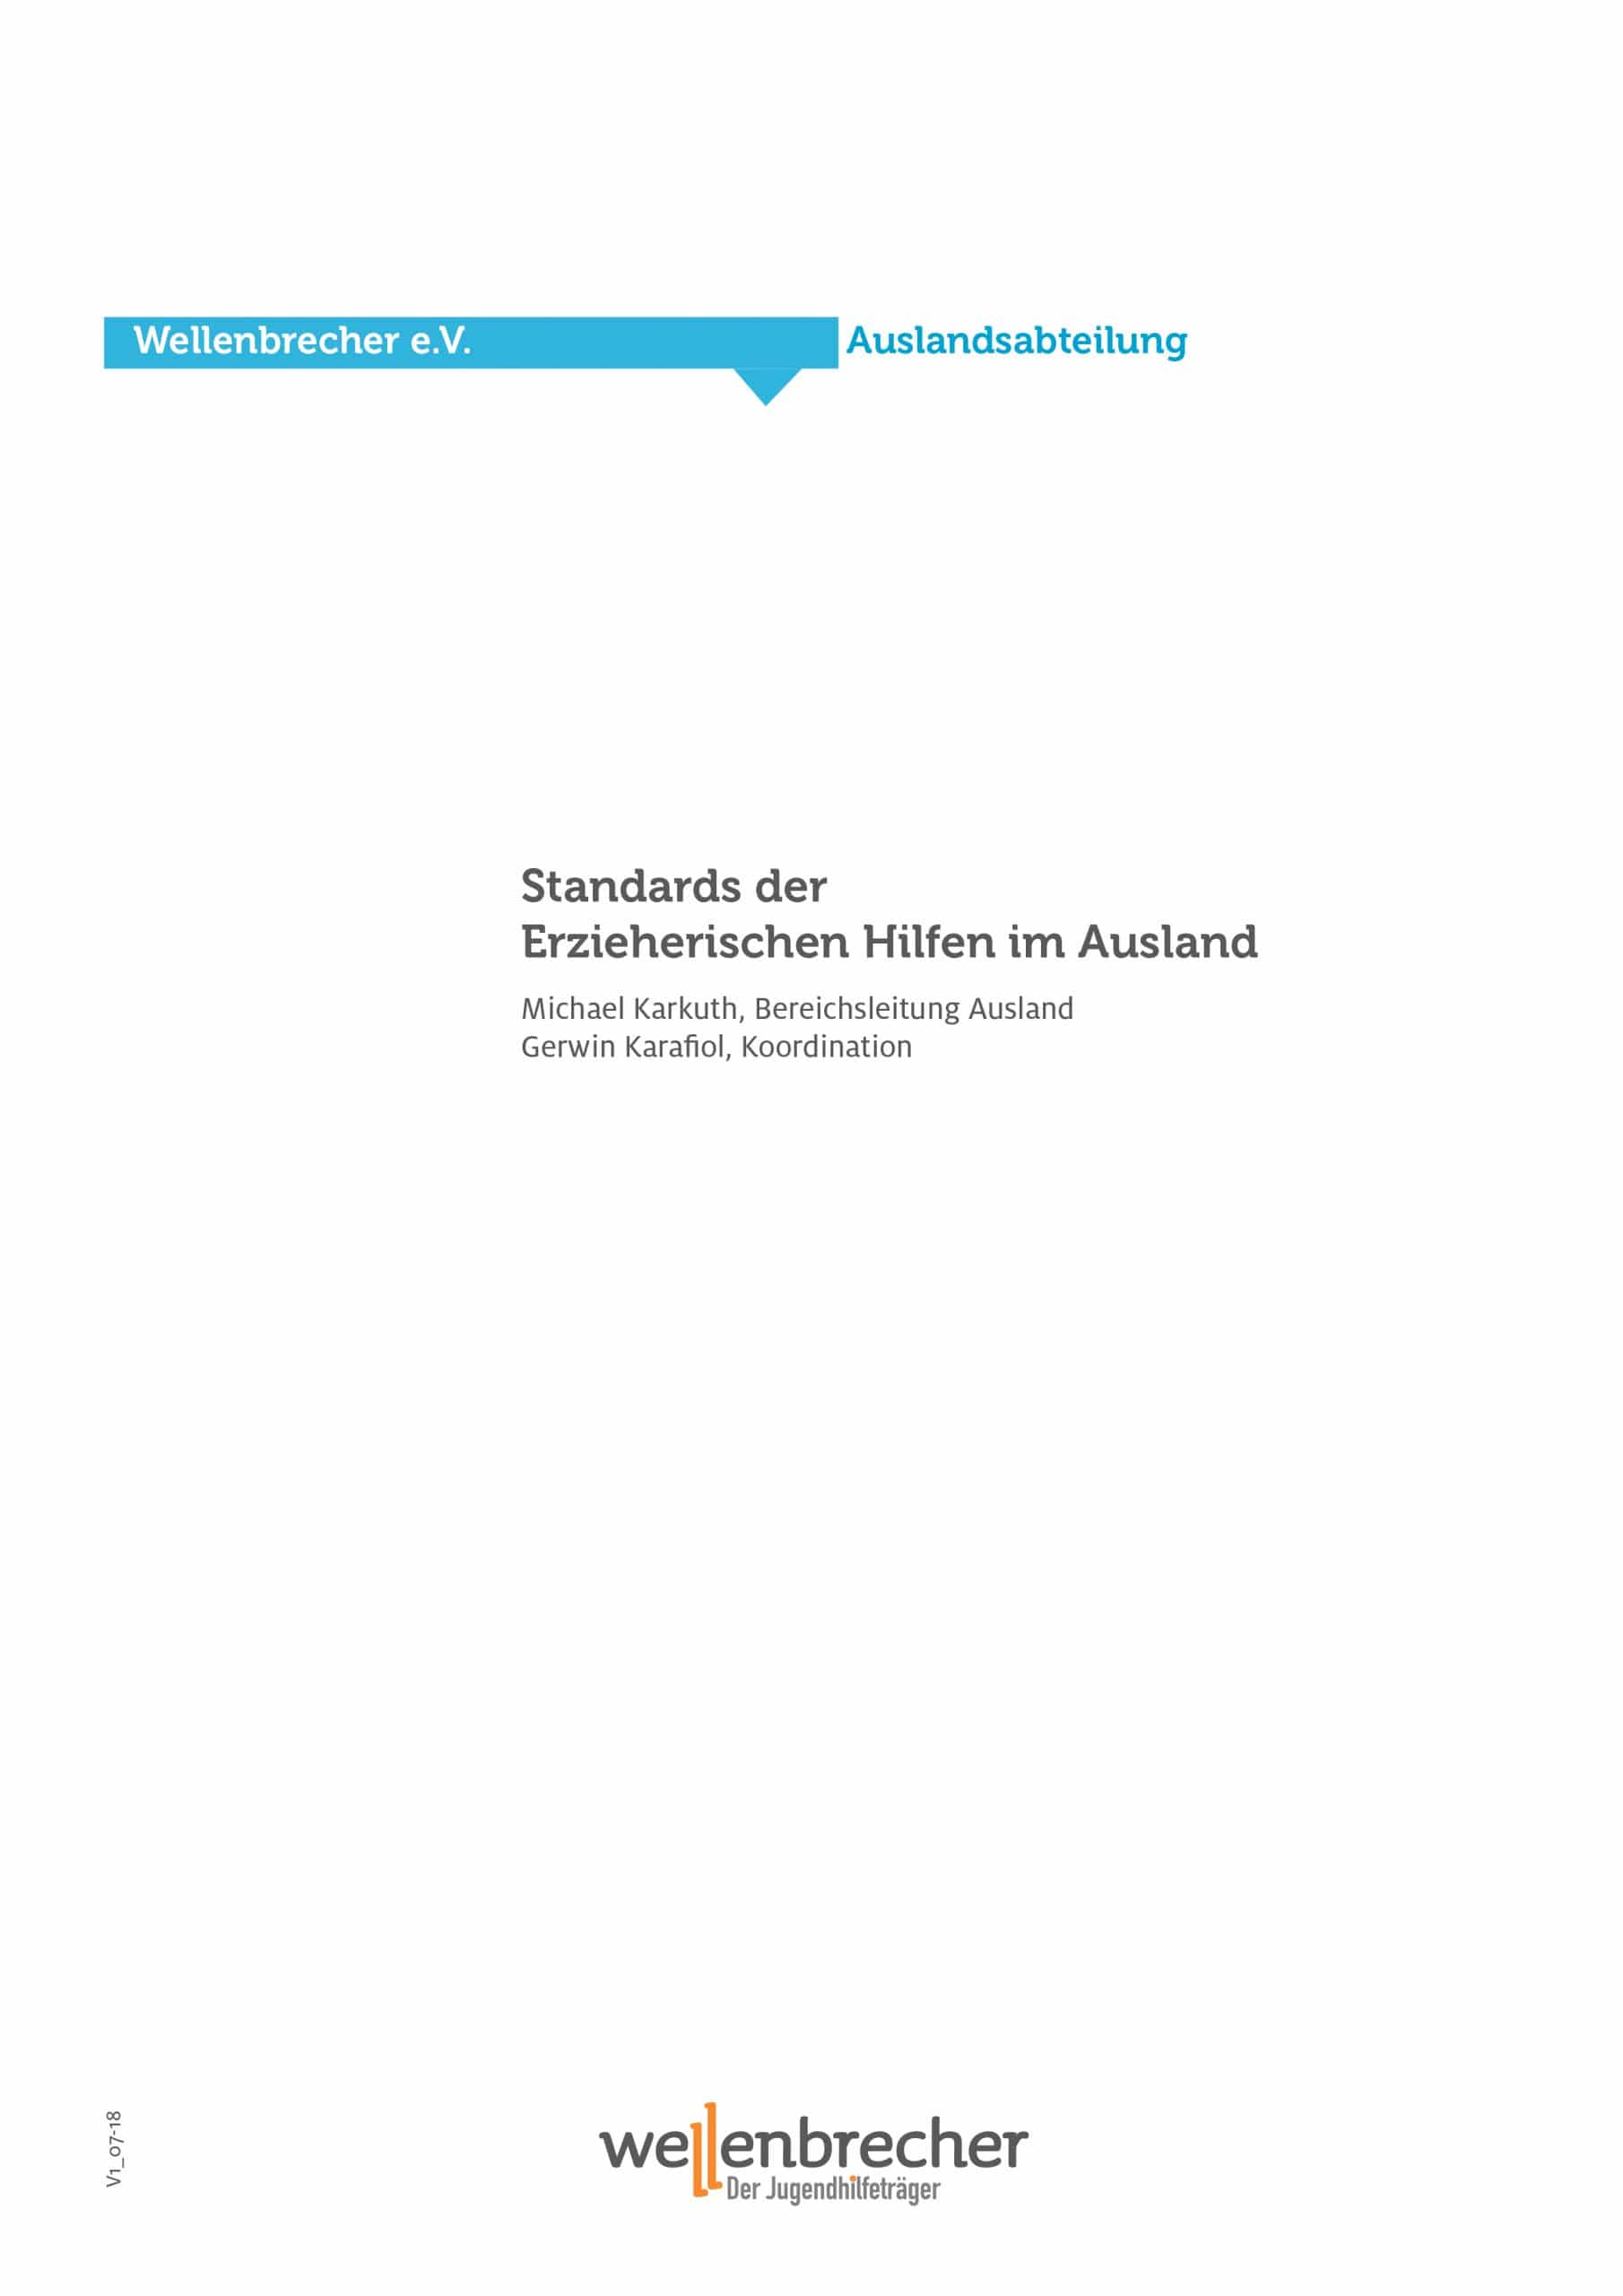 Download Qualitätsstandards in Auslandsprojekten